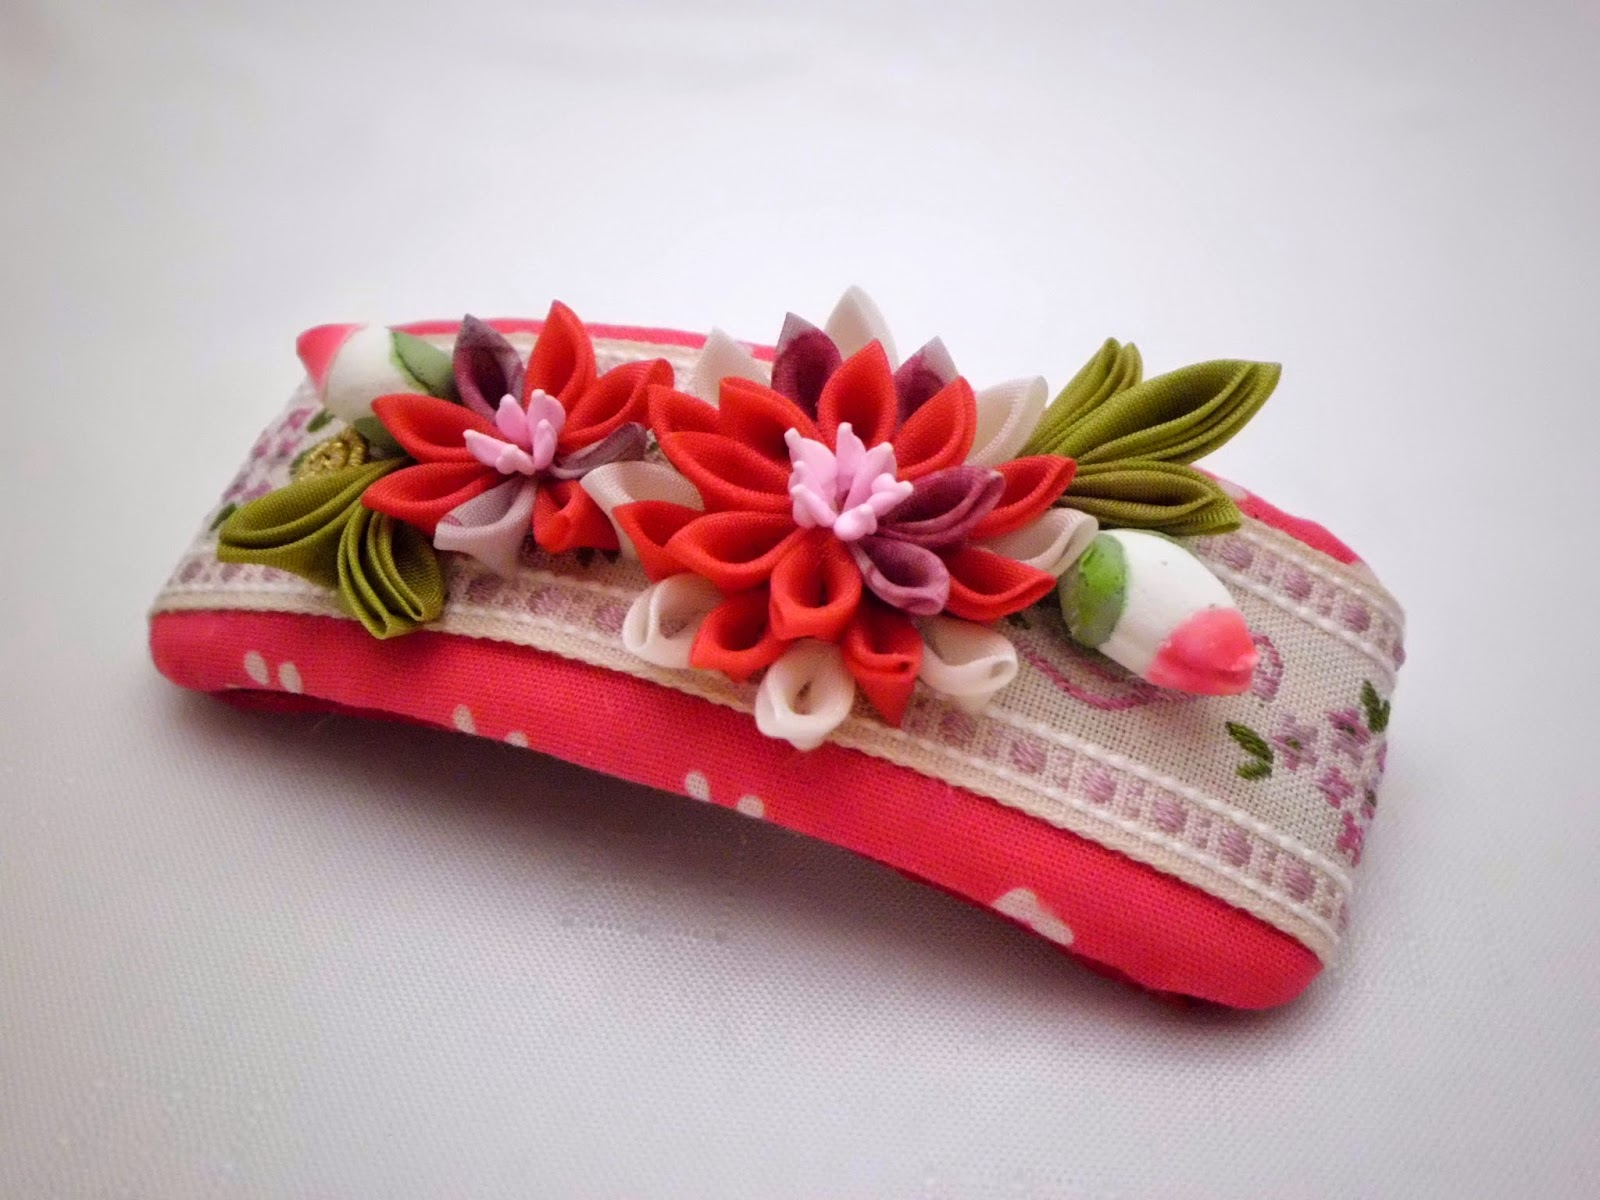 https://www.etsy.com/listing/222233736/handmade-french-barrette-pink-white